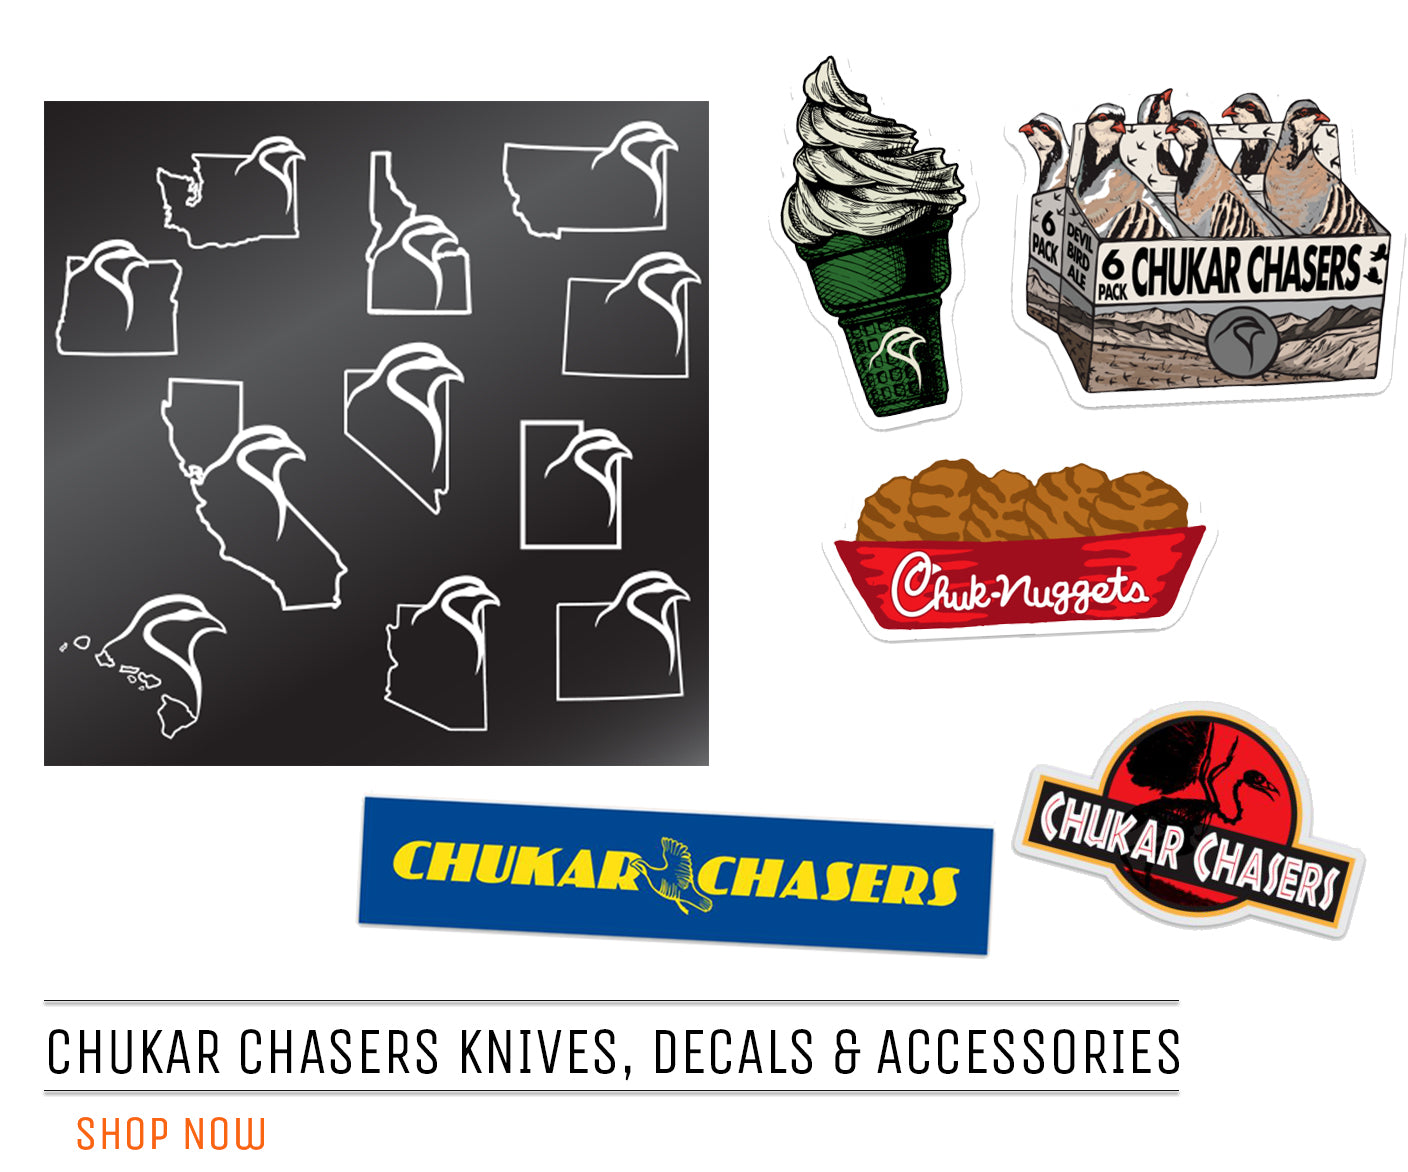 Chukar Chaser Accessories & Decals